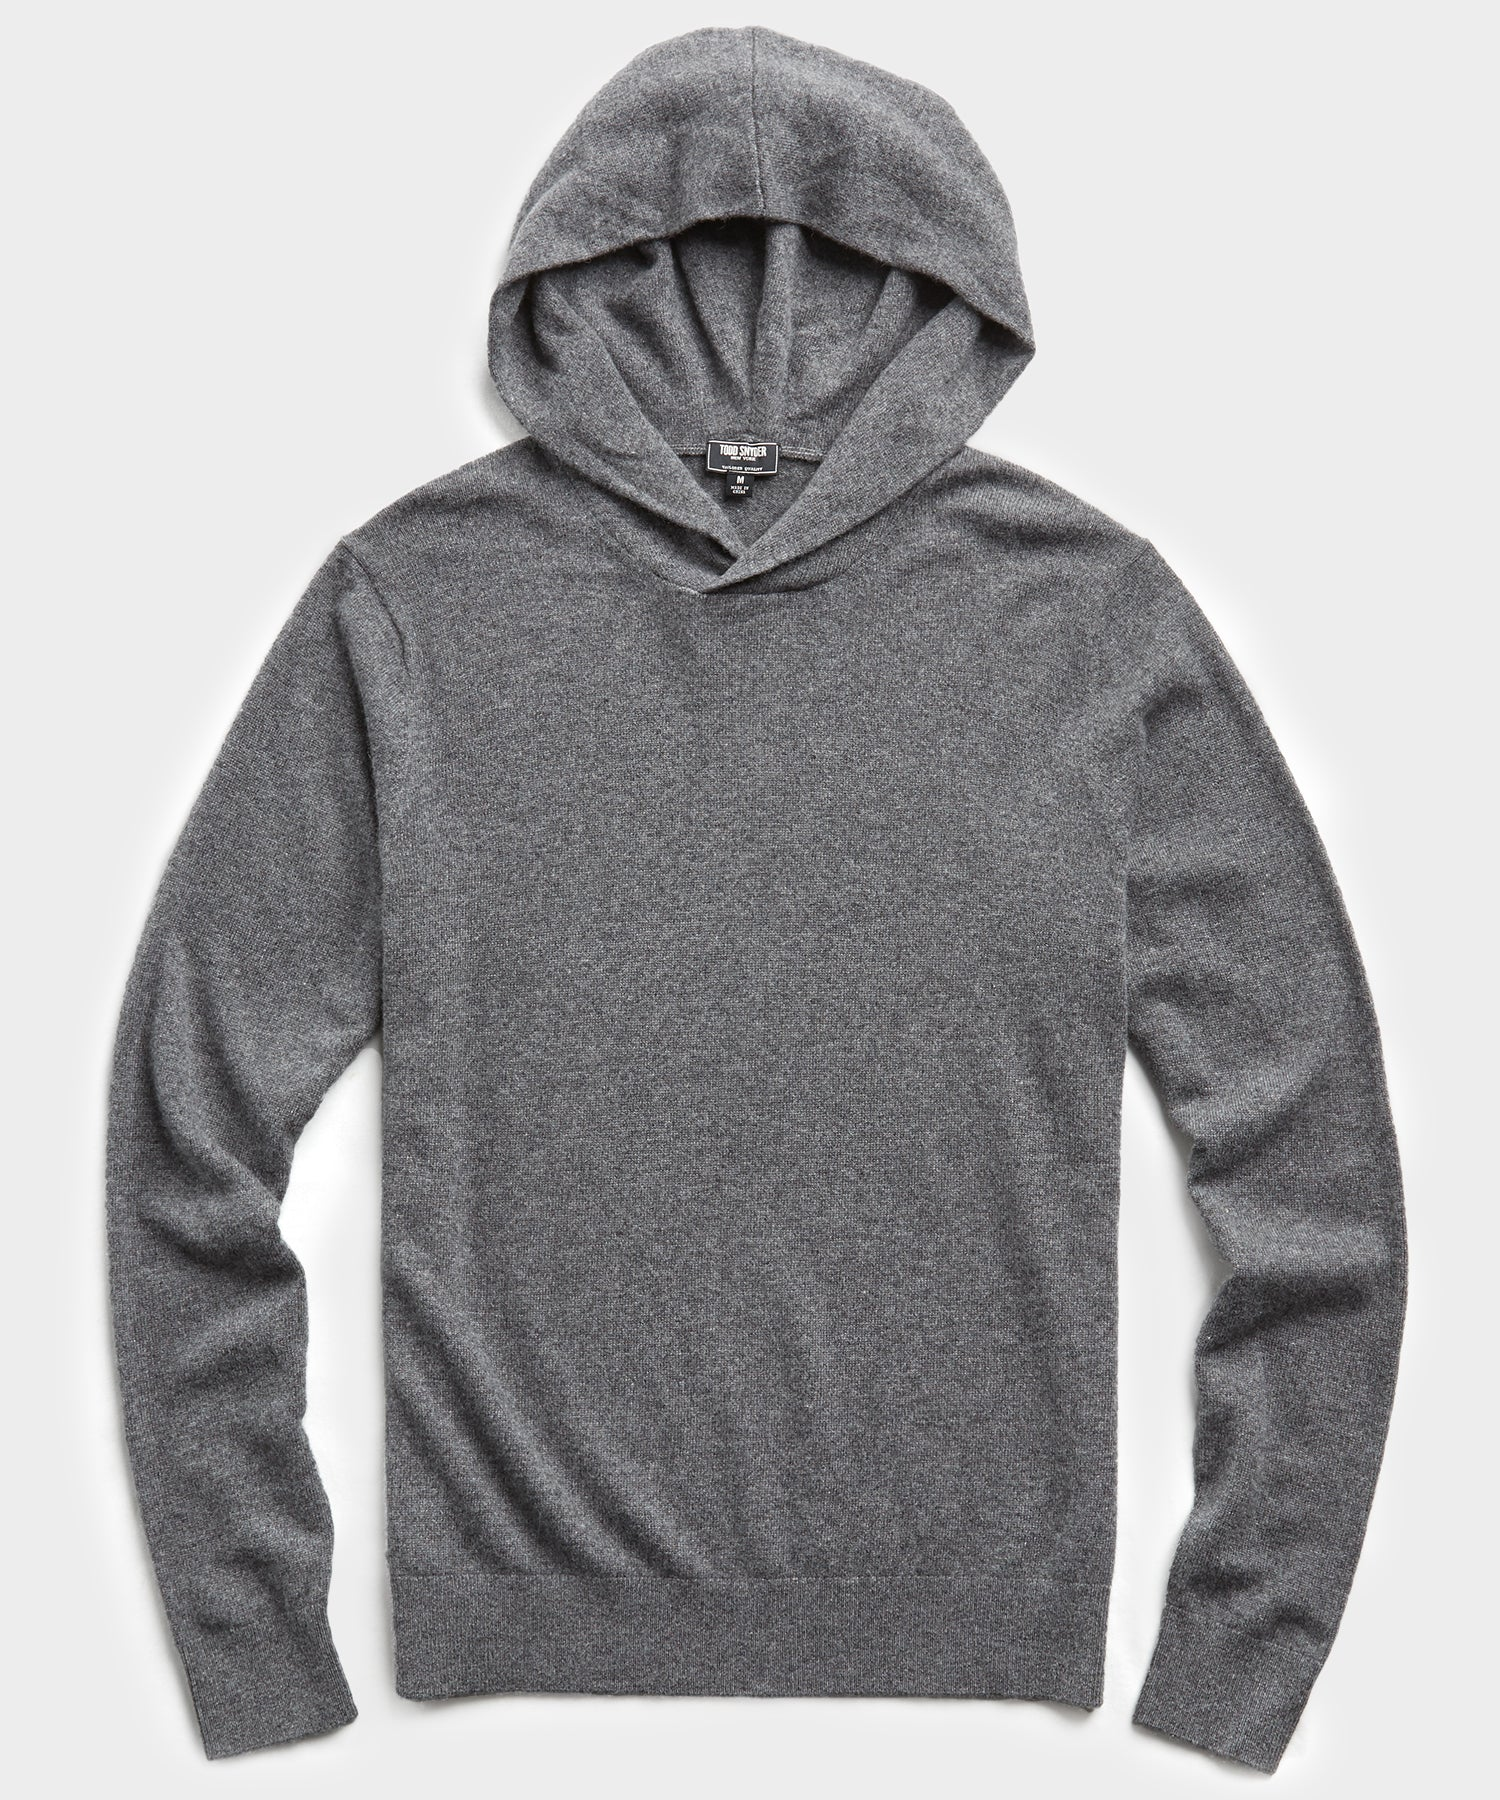 Cashmere Hoodie in Charcoal